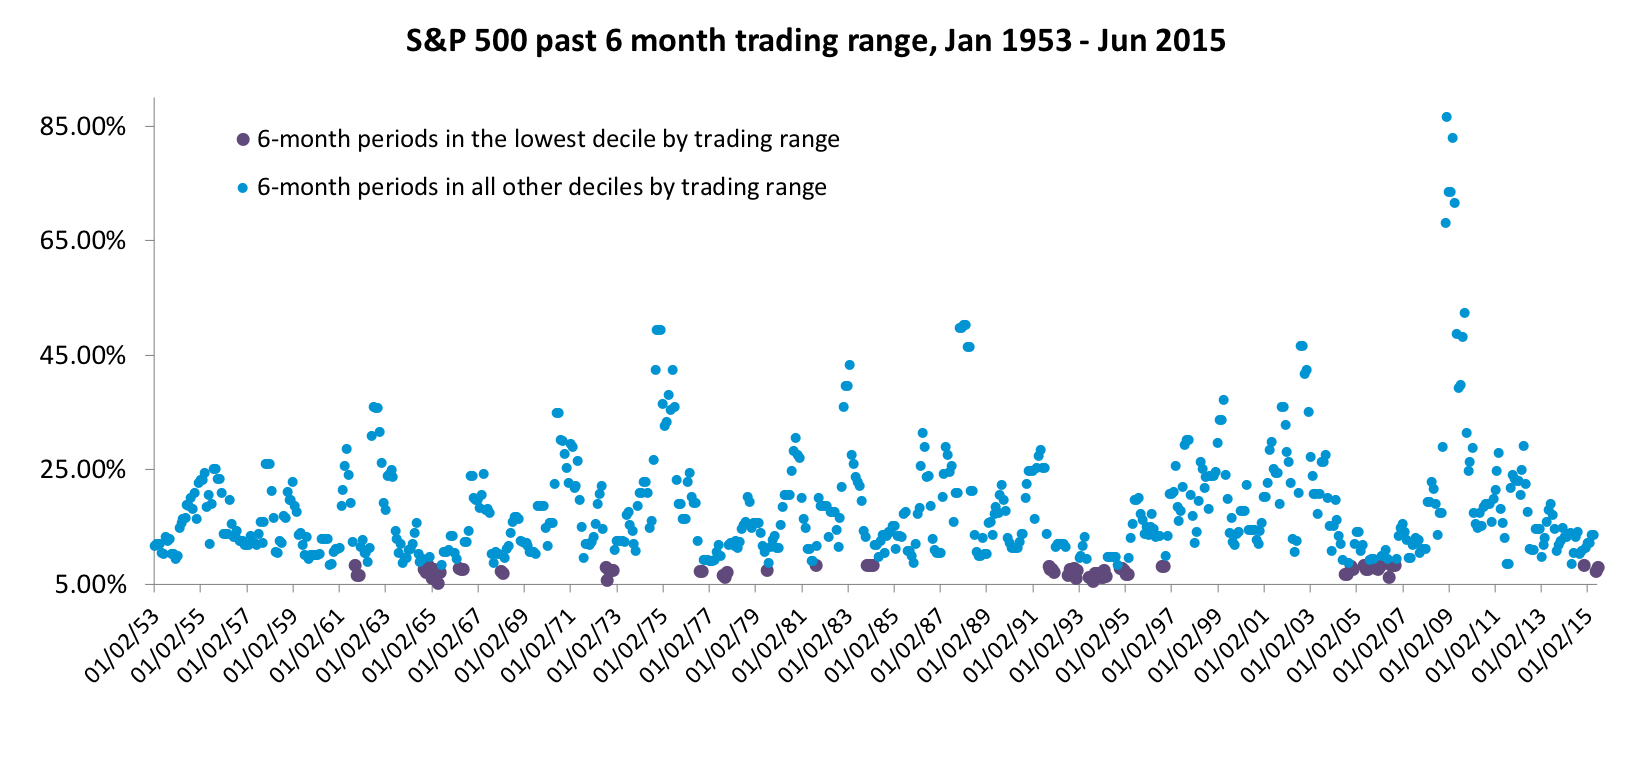 S&P 500 past 6 month trading range.png